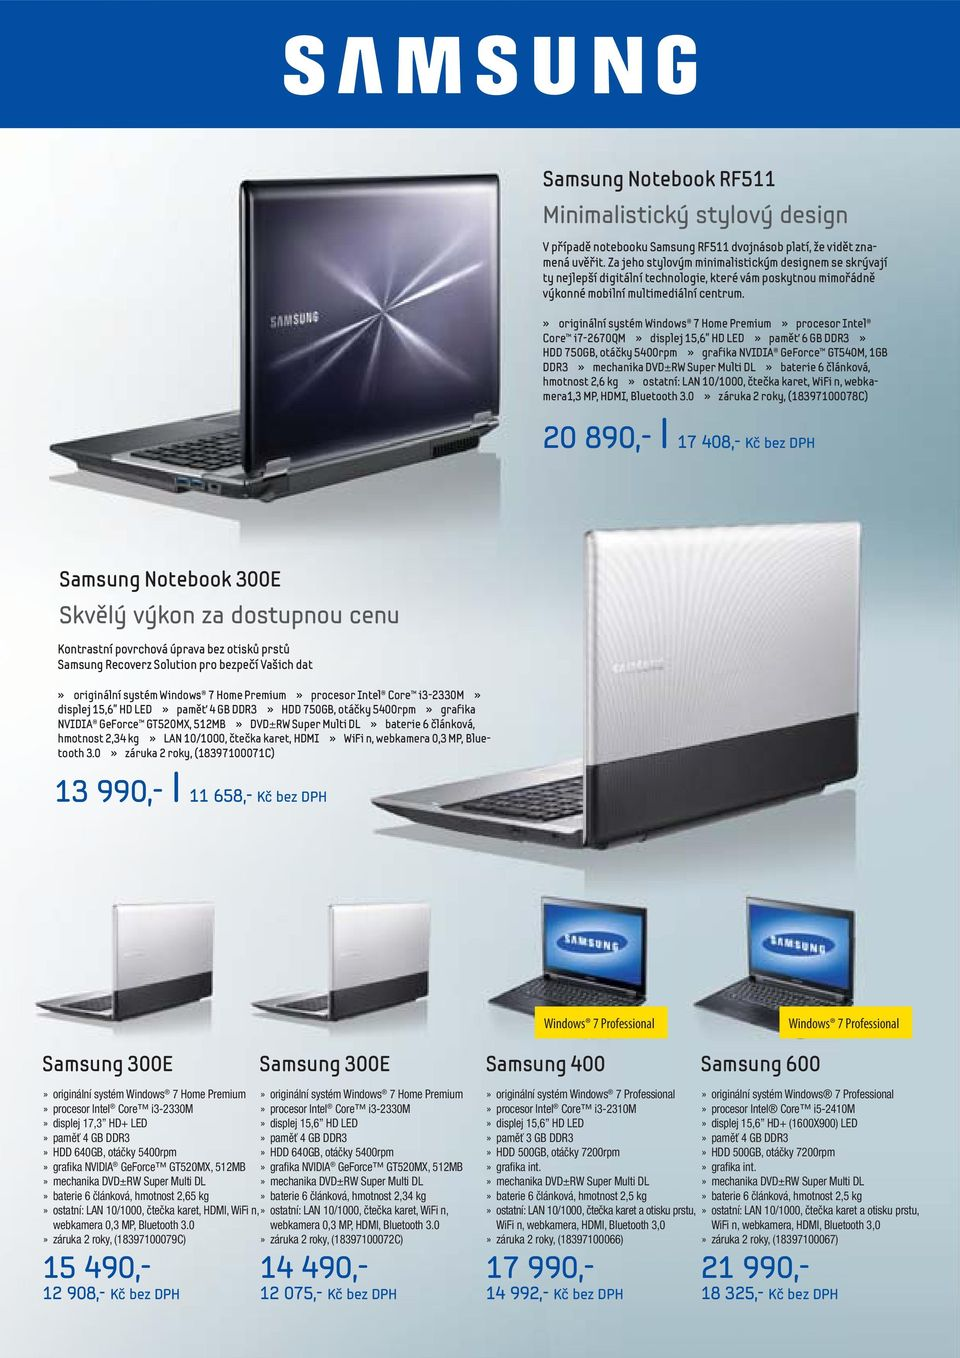 » originální systém Windows 7 Home Premium» procesor Intel Core i7-2670qm» displej 15,6 HD LED» paměť 6 GB DDR3» HDD 750GB, otáčky 5400rpm» grafika NVIDIA GeForce GT540M, 1GB DDR3» mechanika DVD±RW